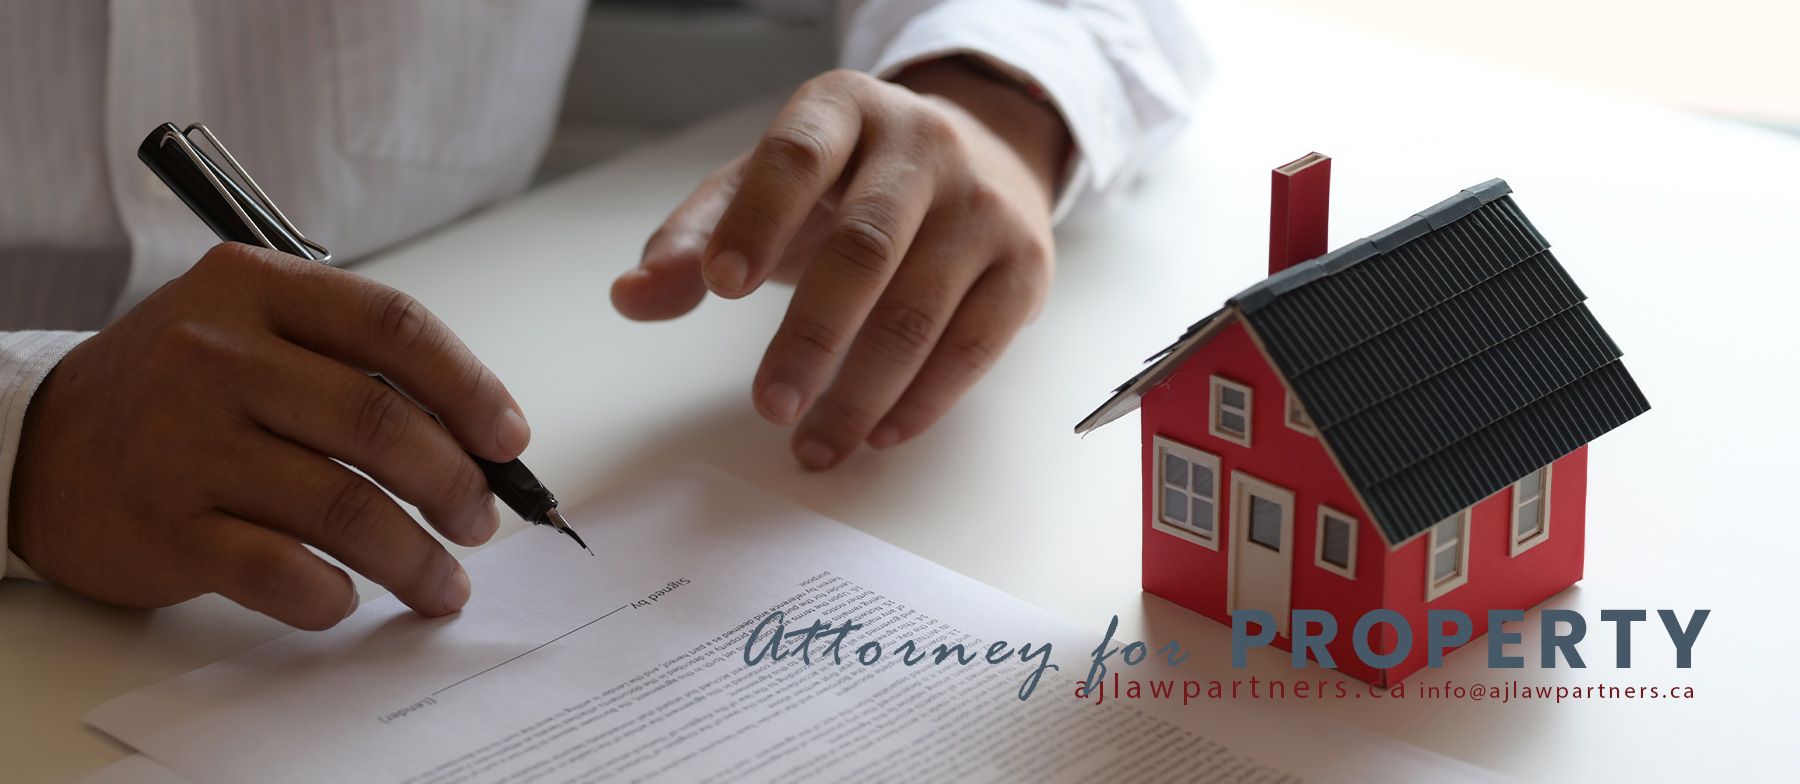 2-types-of-poa-attorney-for-property-power-of-attorney-aj-law-llp